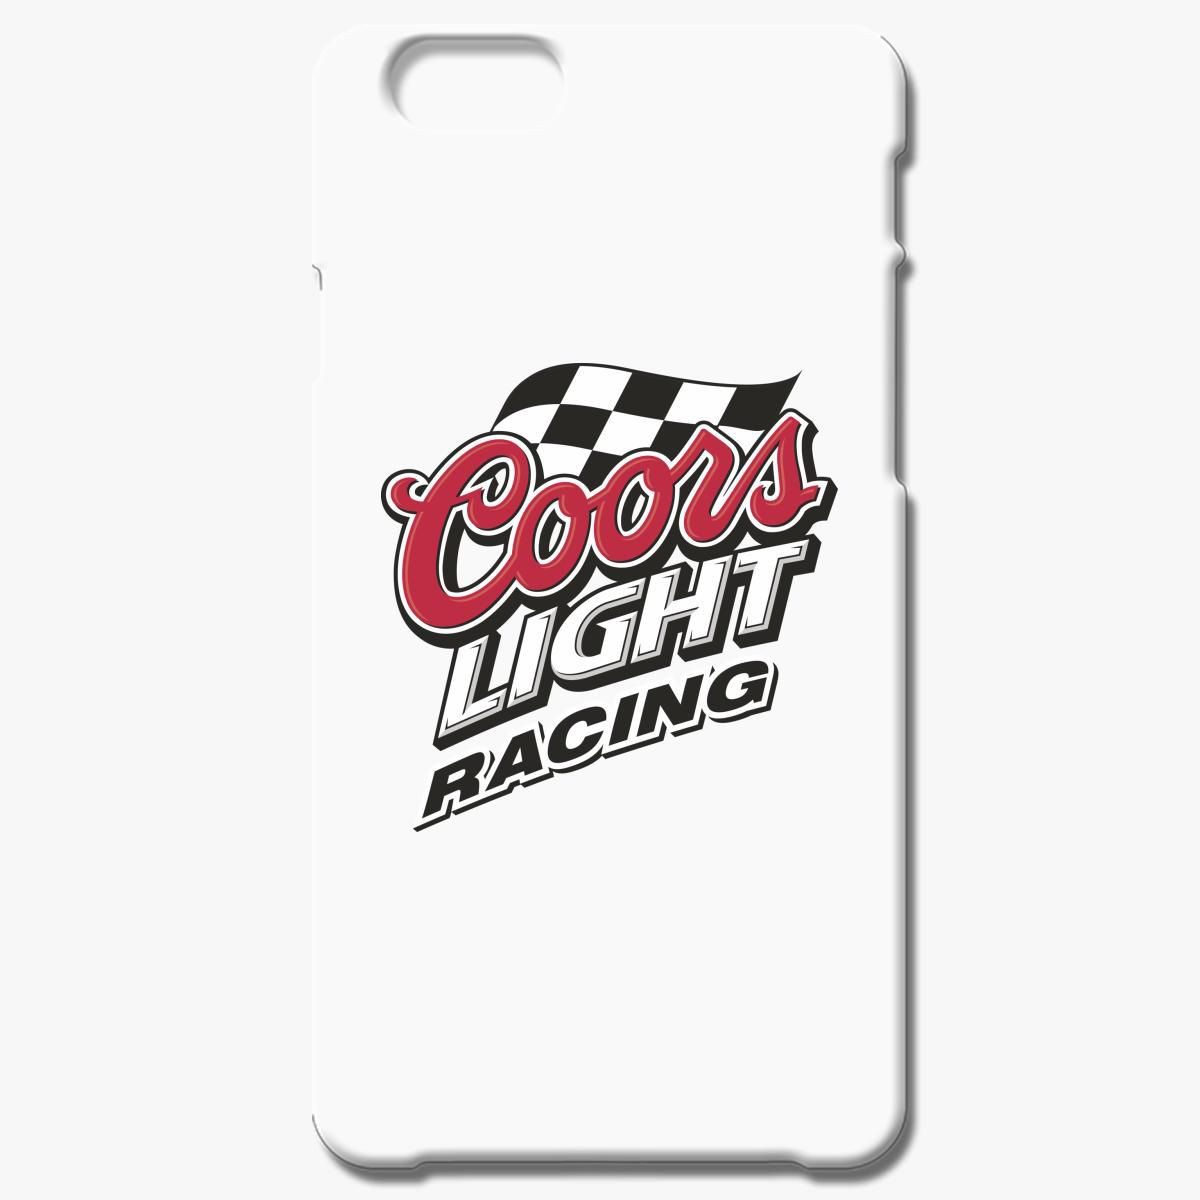 Coors Light Racing Logo Iphone 6 6s Plus Case